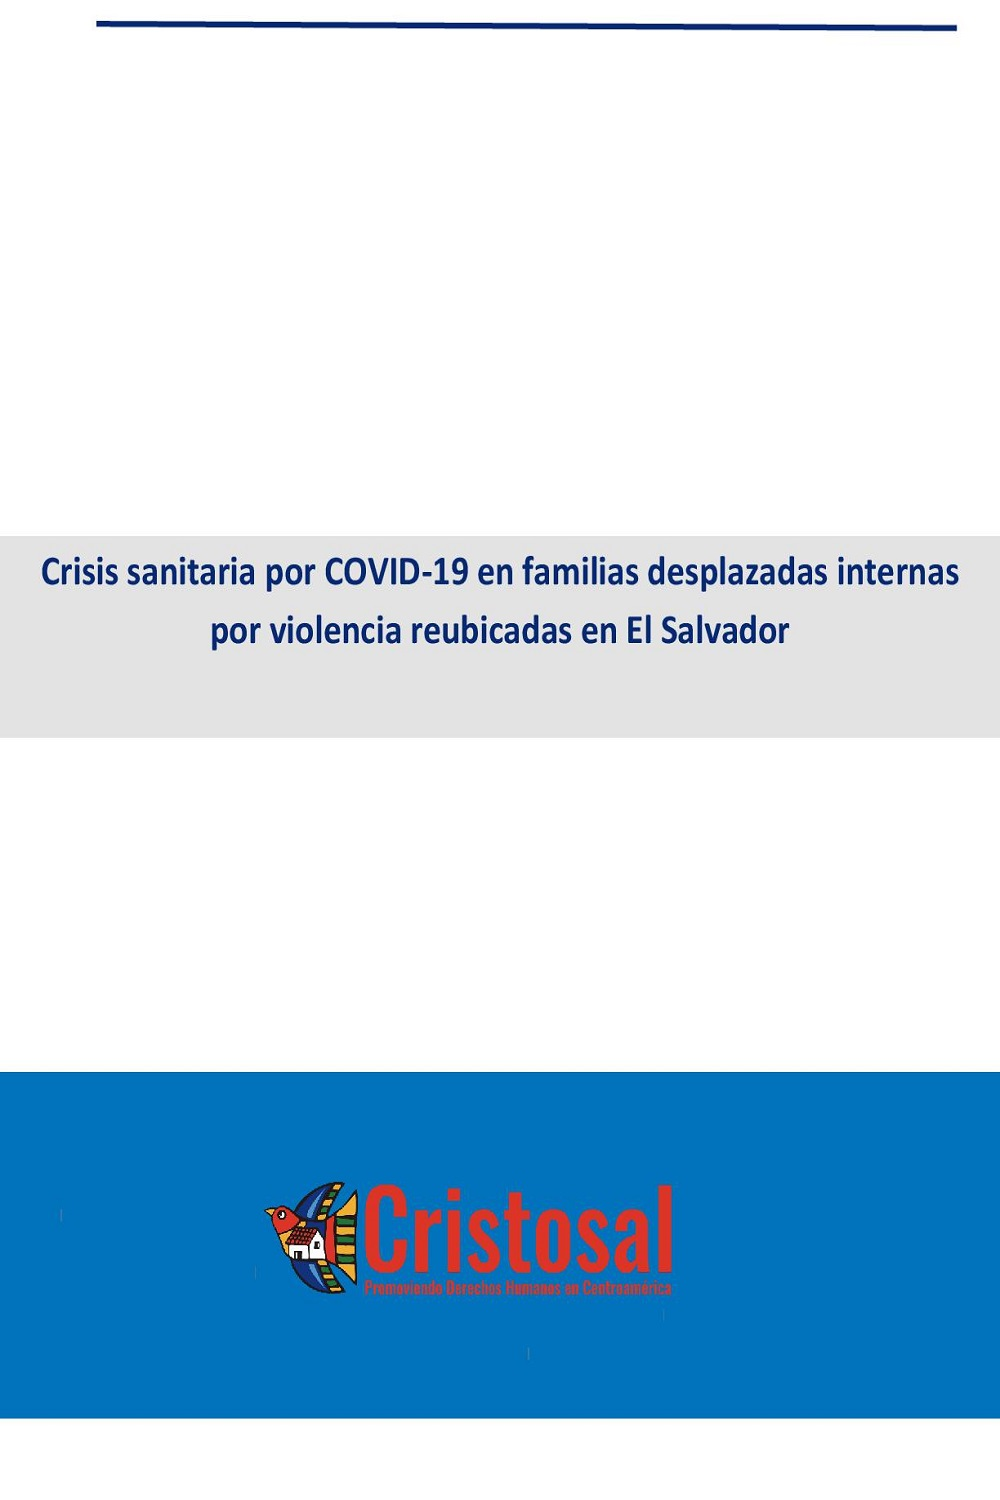 Health crisis due to COVID-19 in families internally displaced by violence relocated in El Salvador (Spanish)